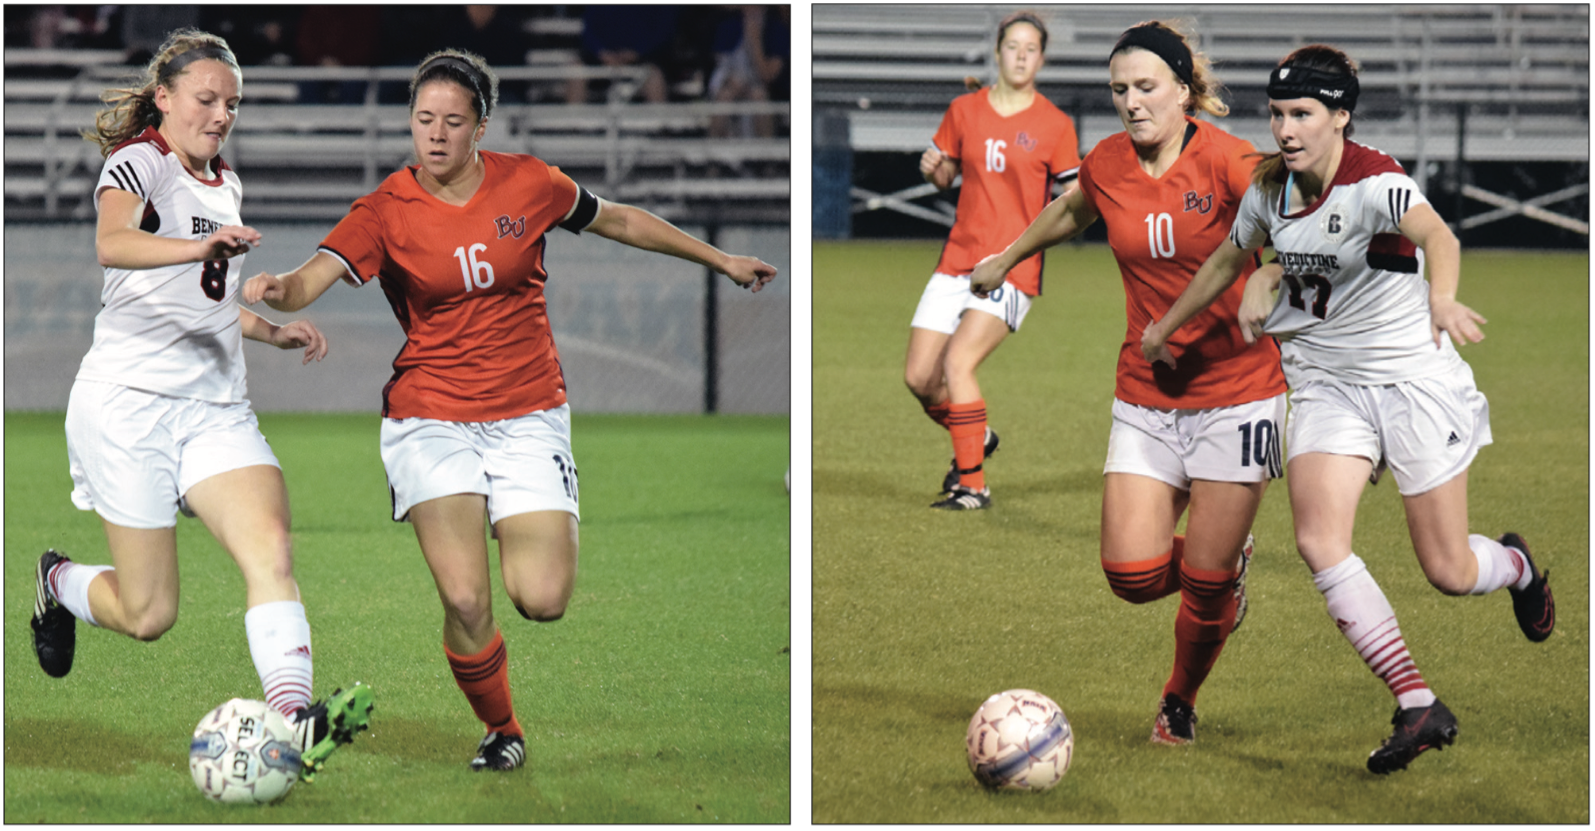 Left: Kady Dieringer assisted on Baker's first goal, scored by Jenna Lattimer. Right: Krista Hooper scored the game's winning goal on Wednesday night against Benedictine in the 73rd minute.